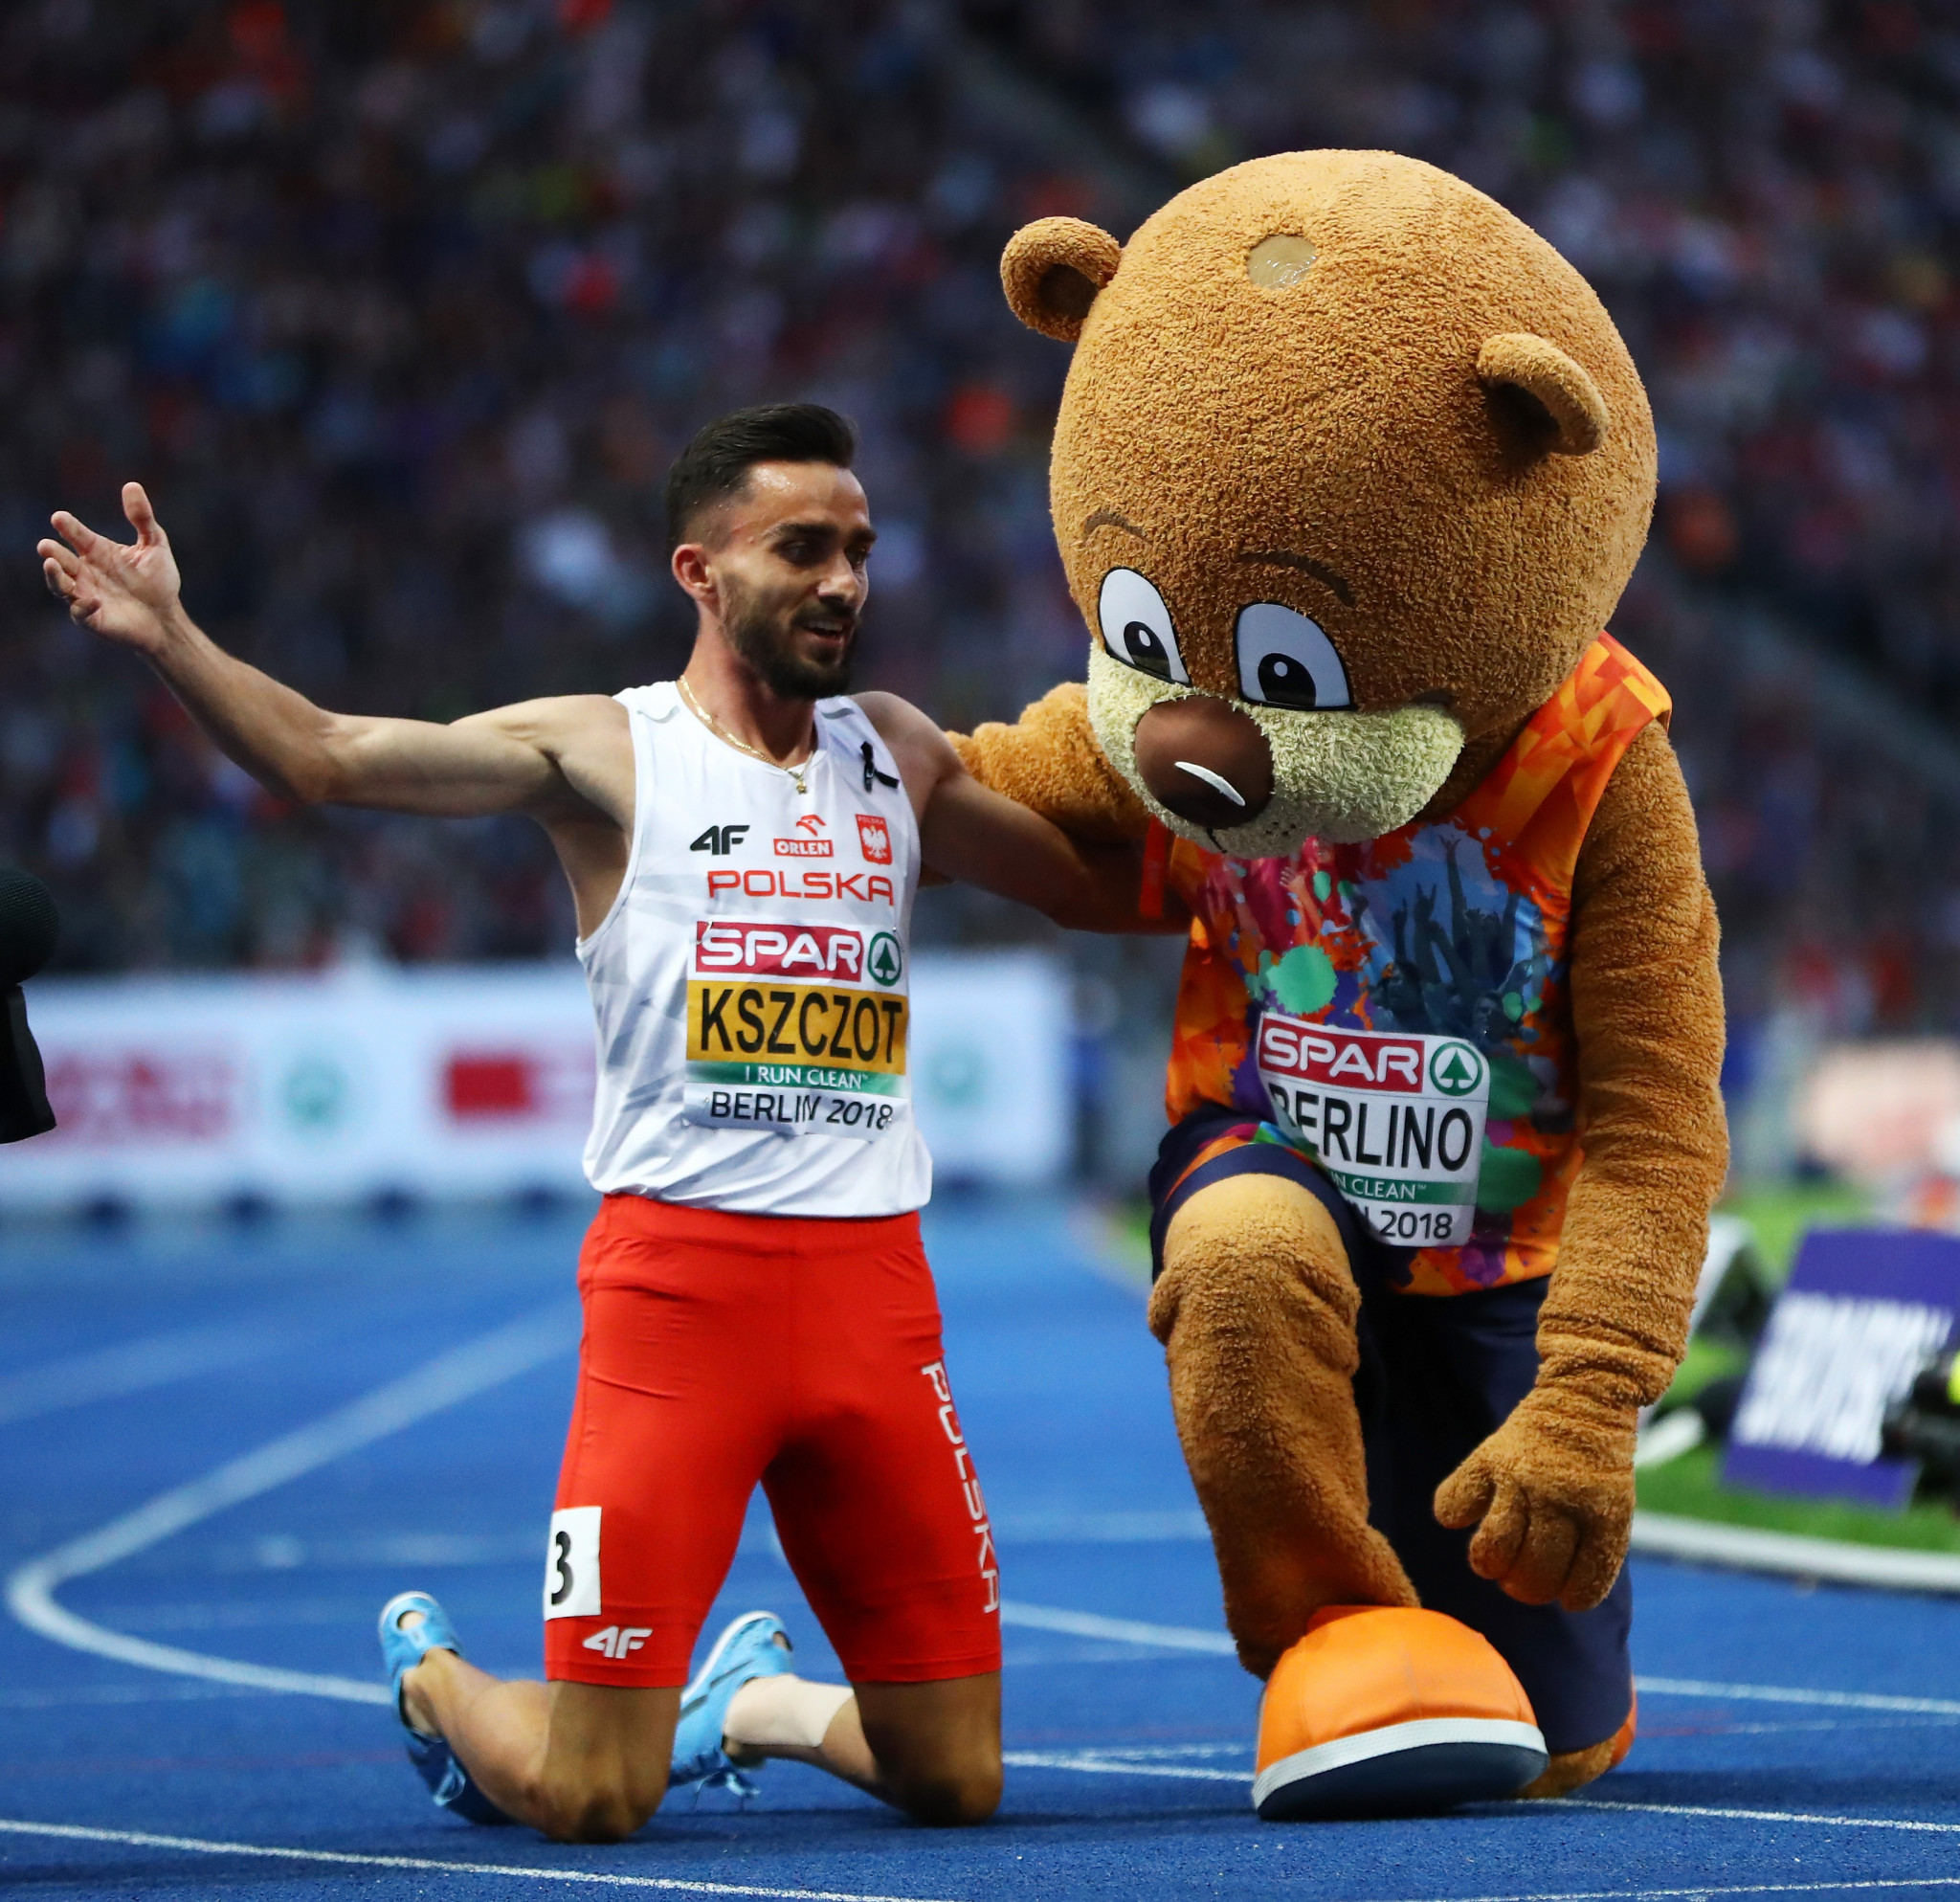 Berlin and Glasgow 2018 European Championships: Day 10 of competition